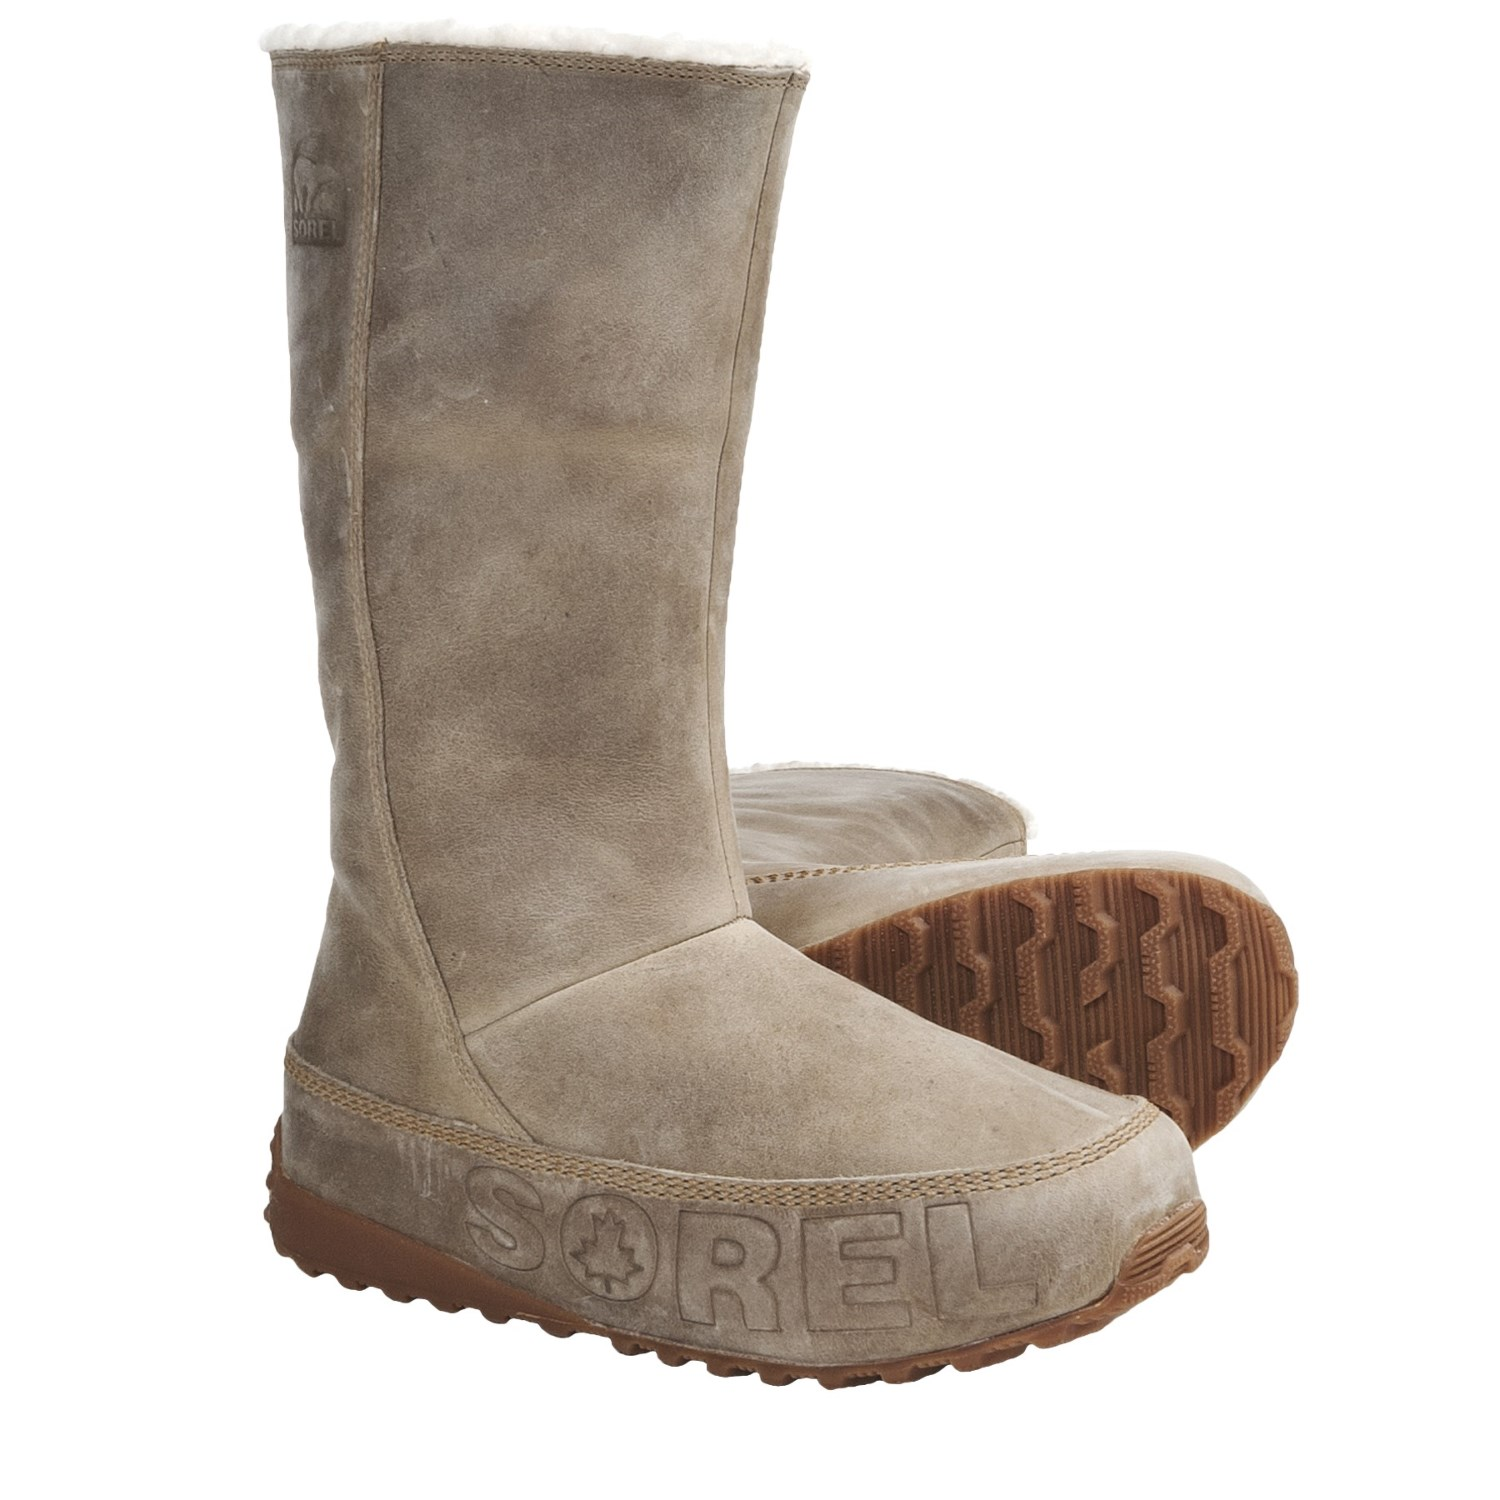 Sorel Suka NM Boots - Fleece Lined (For Women) in Curry